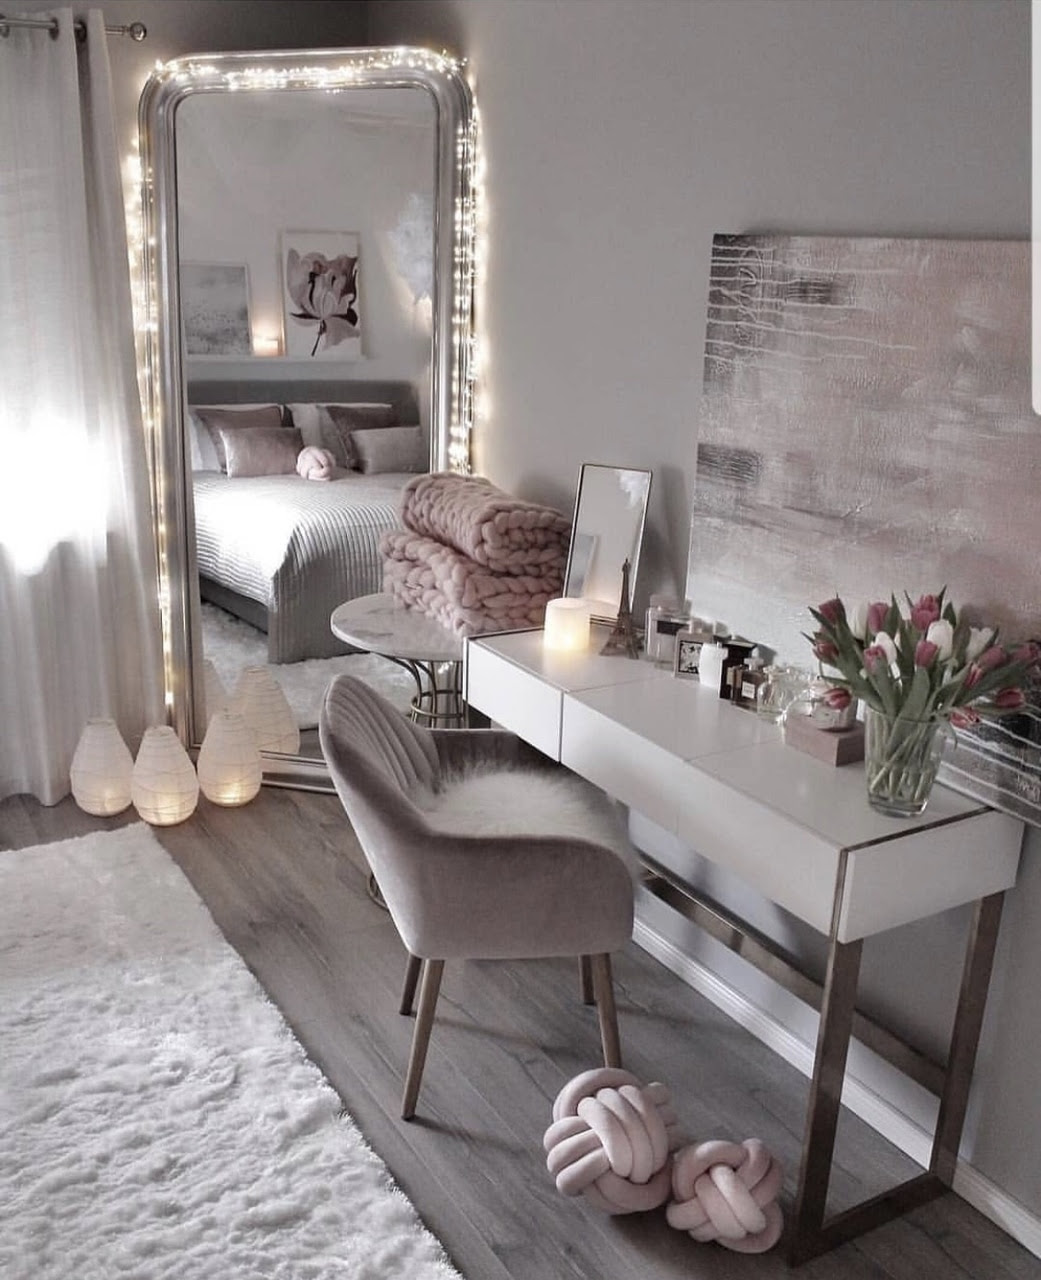 aesthetic, bedroom ideas, decorations and bedroom - image #25